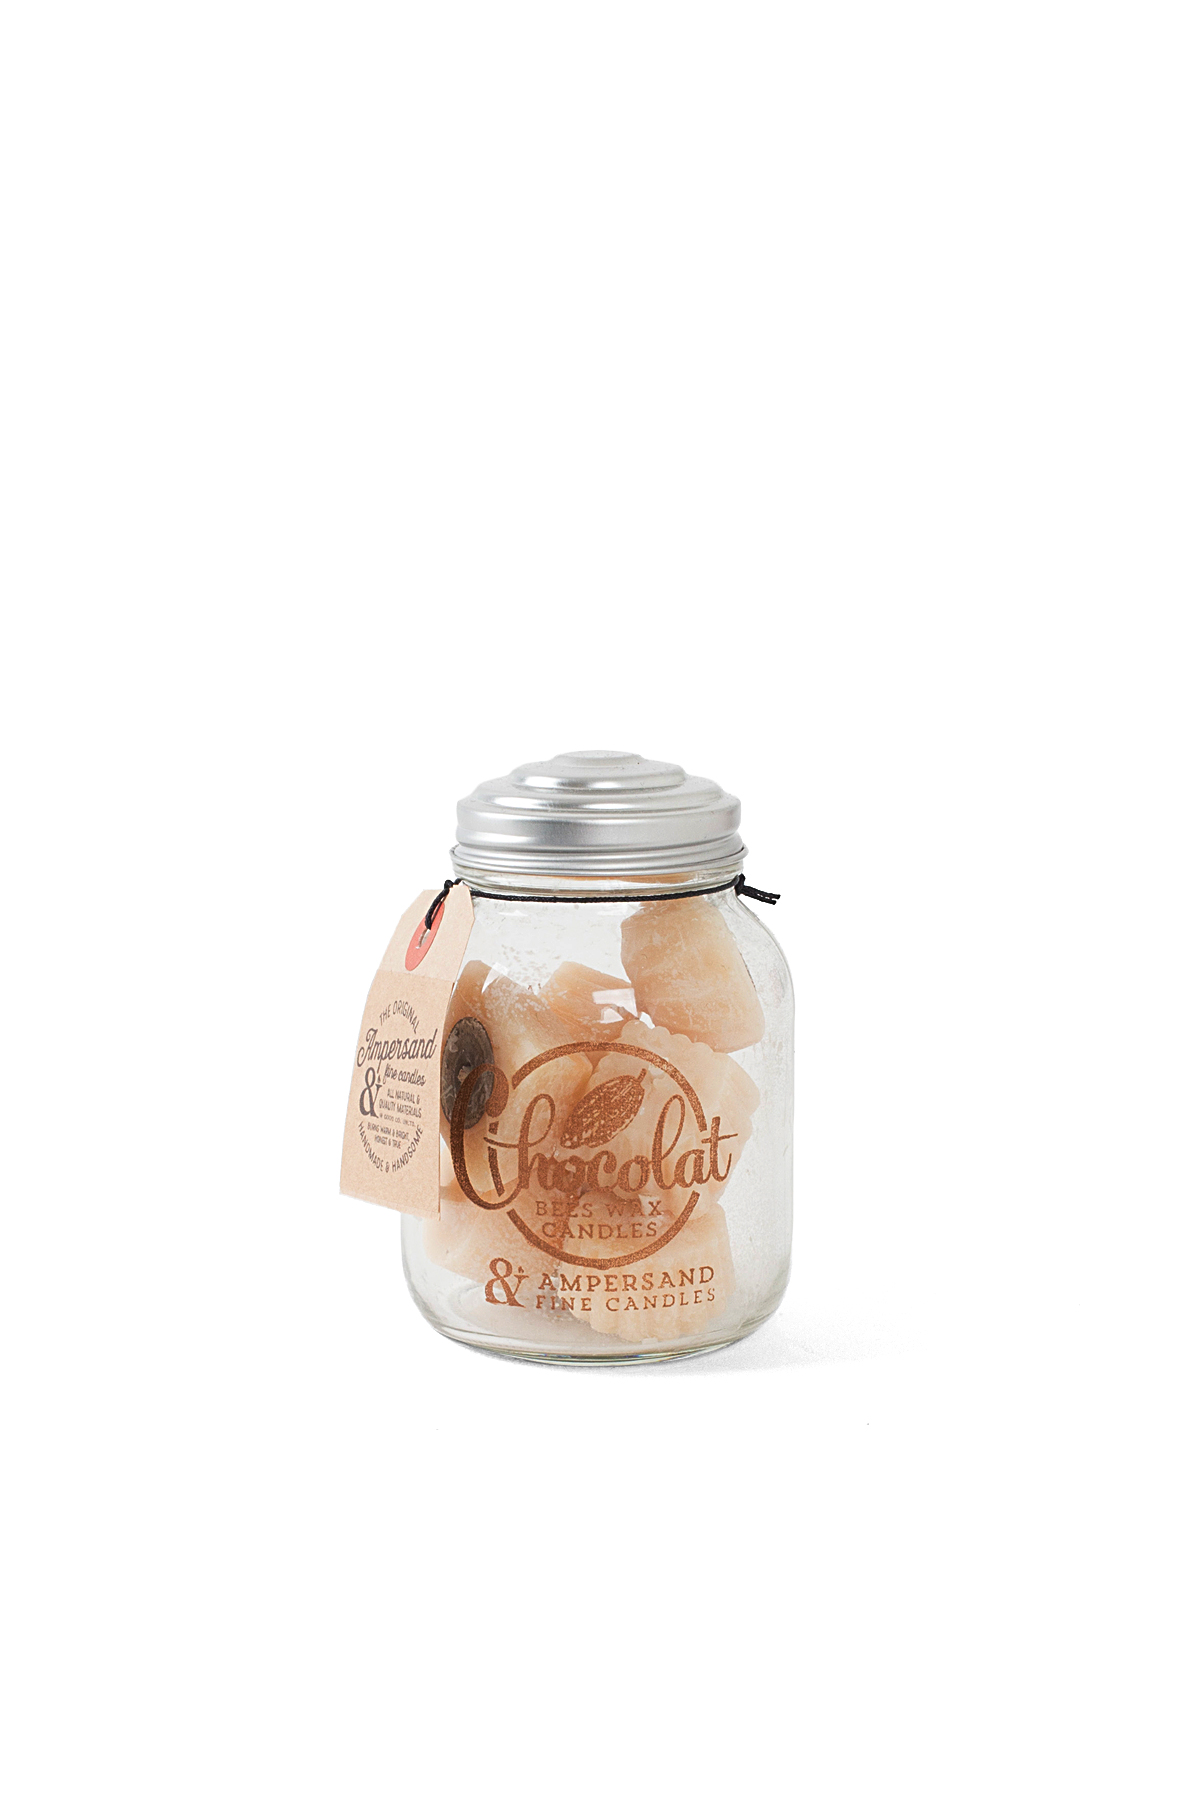 Ampersand Fine Candles : Chocolat Jar (8piece)